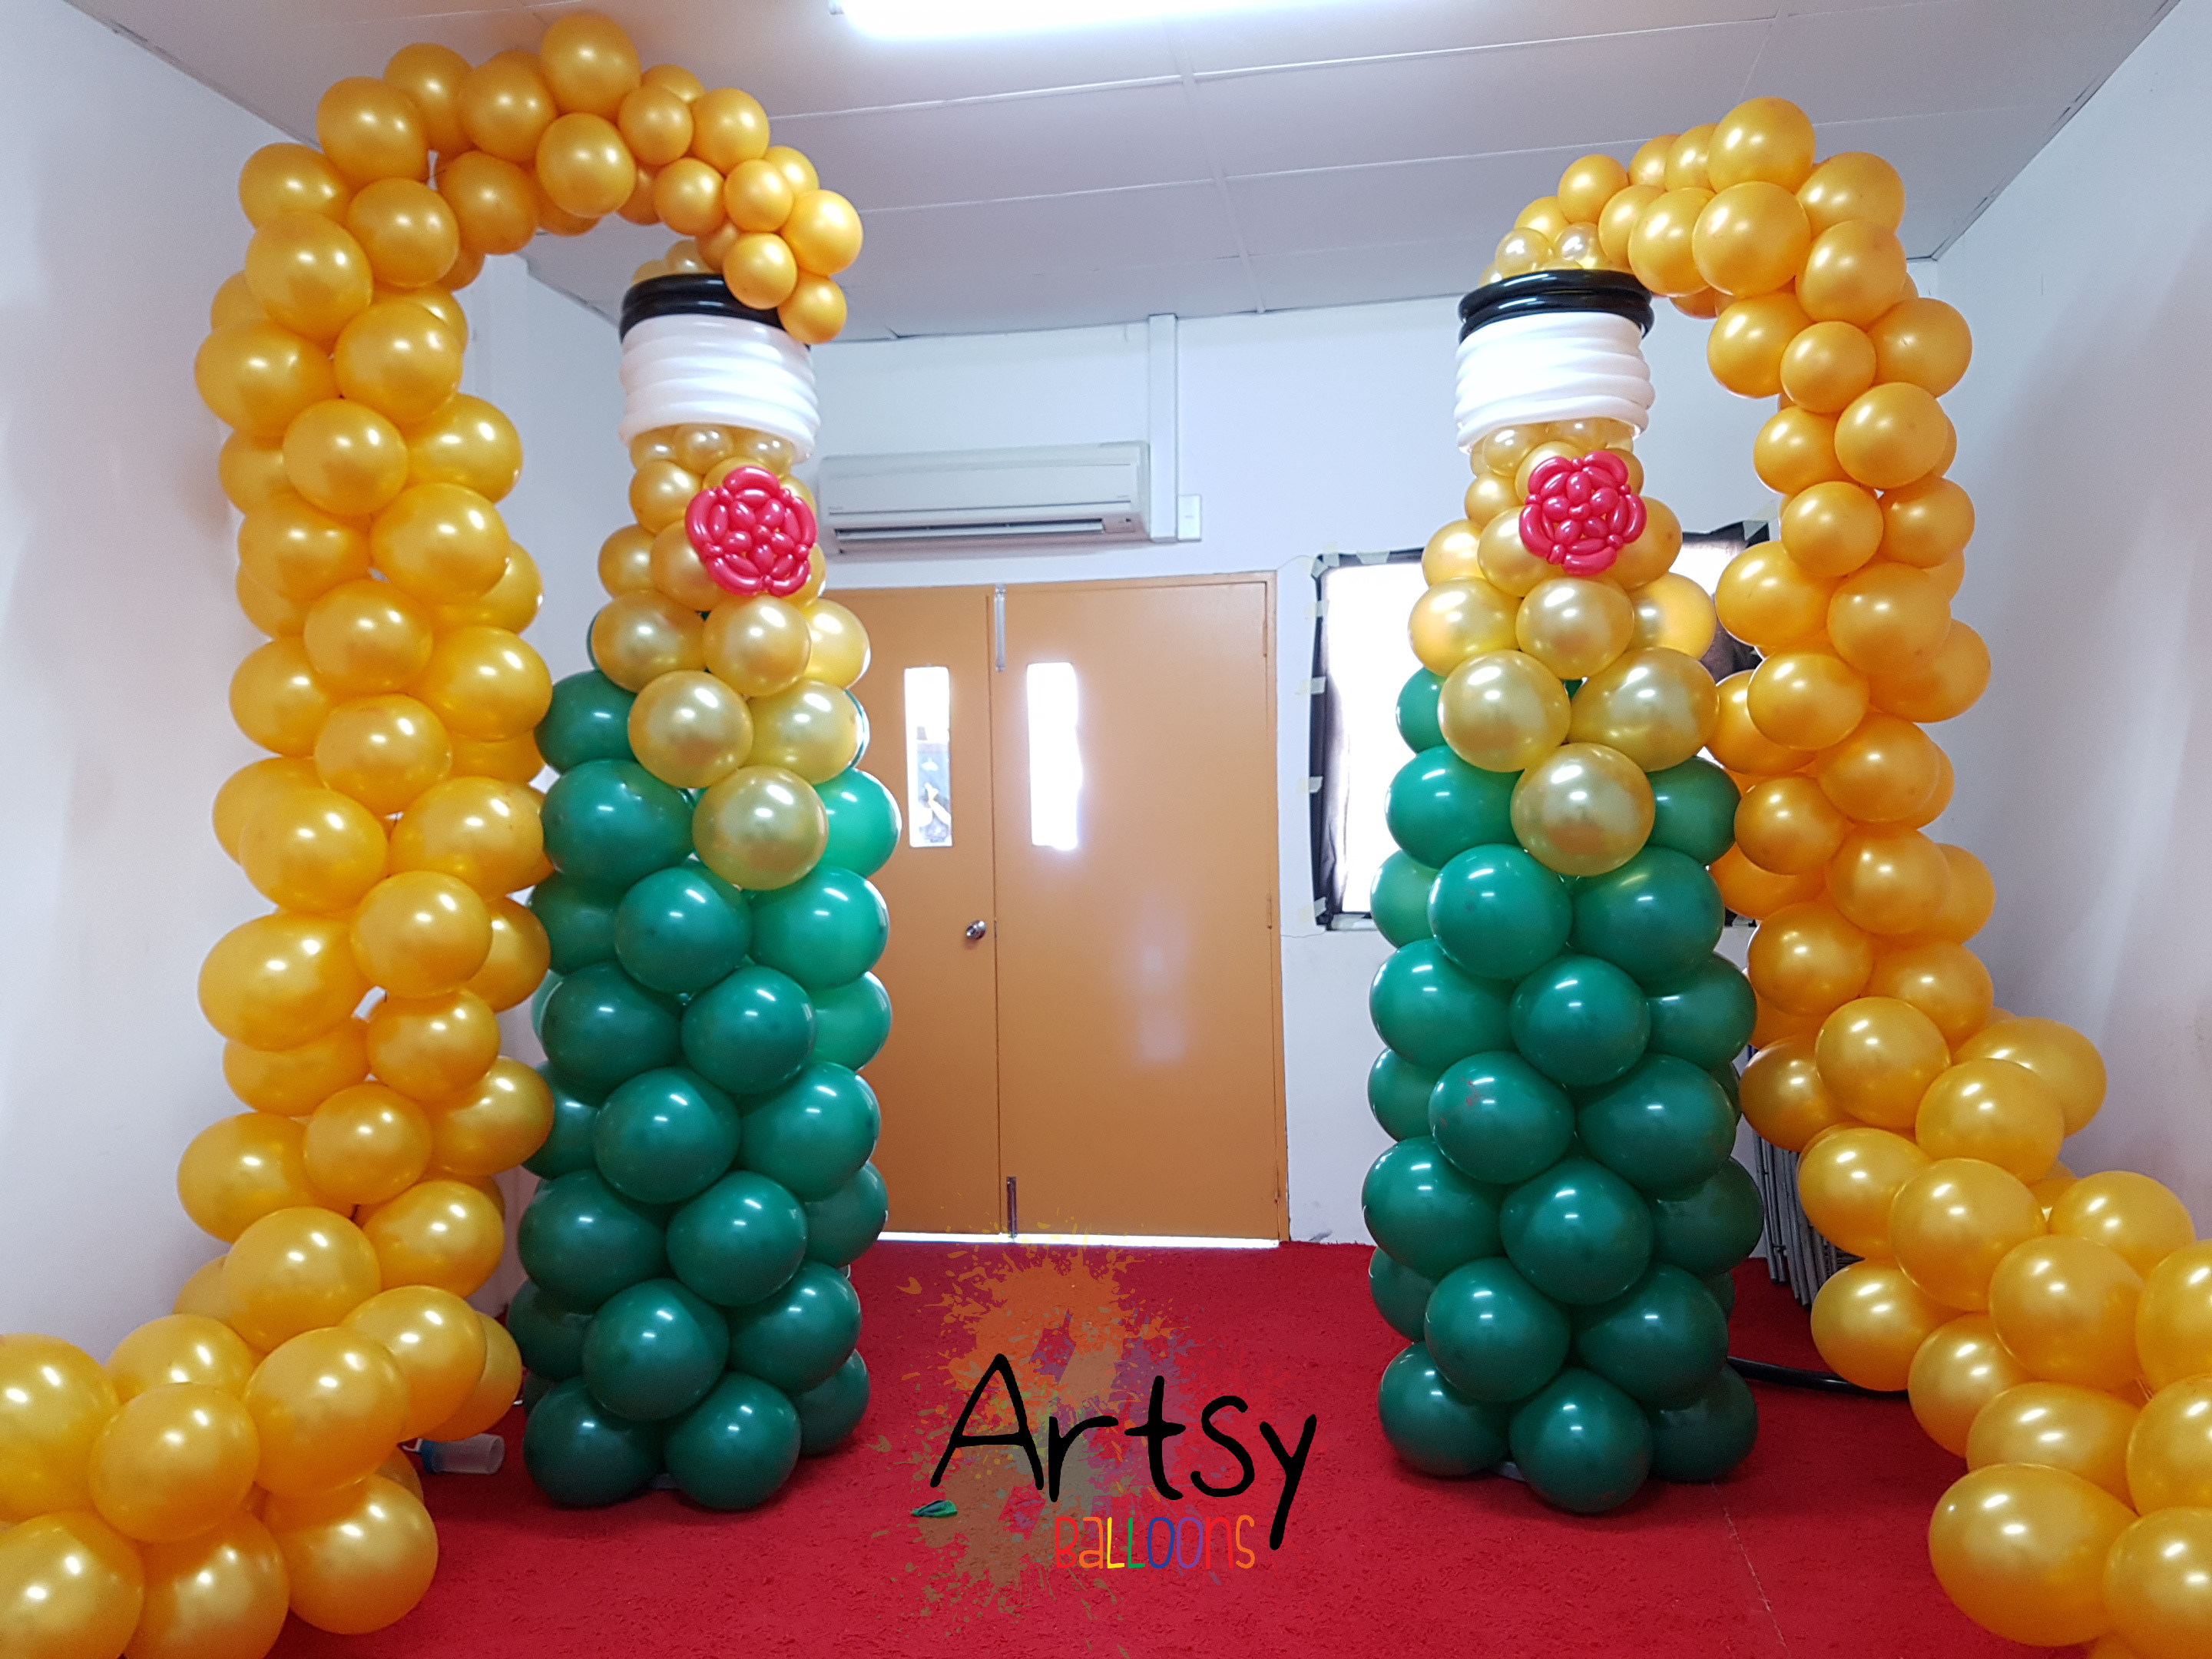 Grand wine balloon sculpture for grand opening for Balloon decoration course